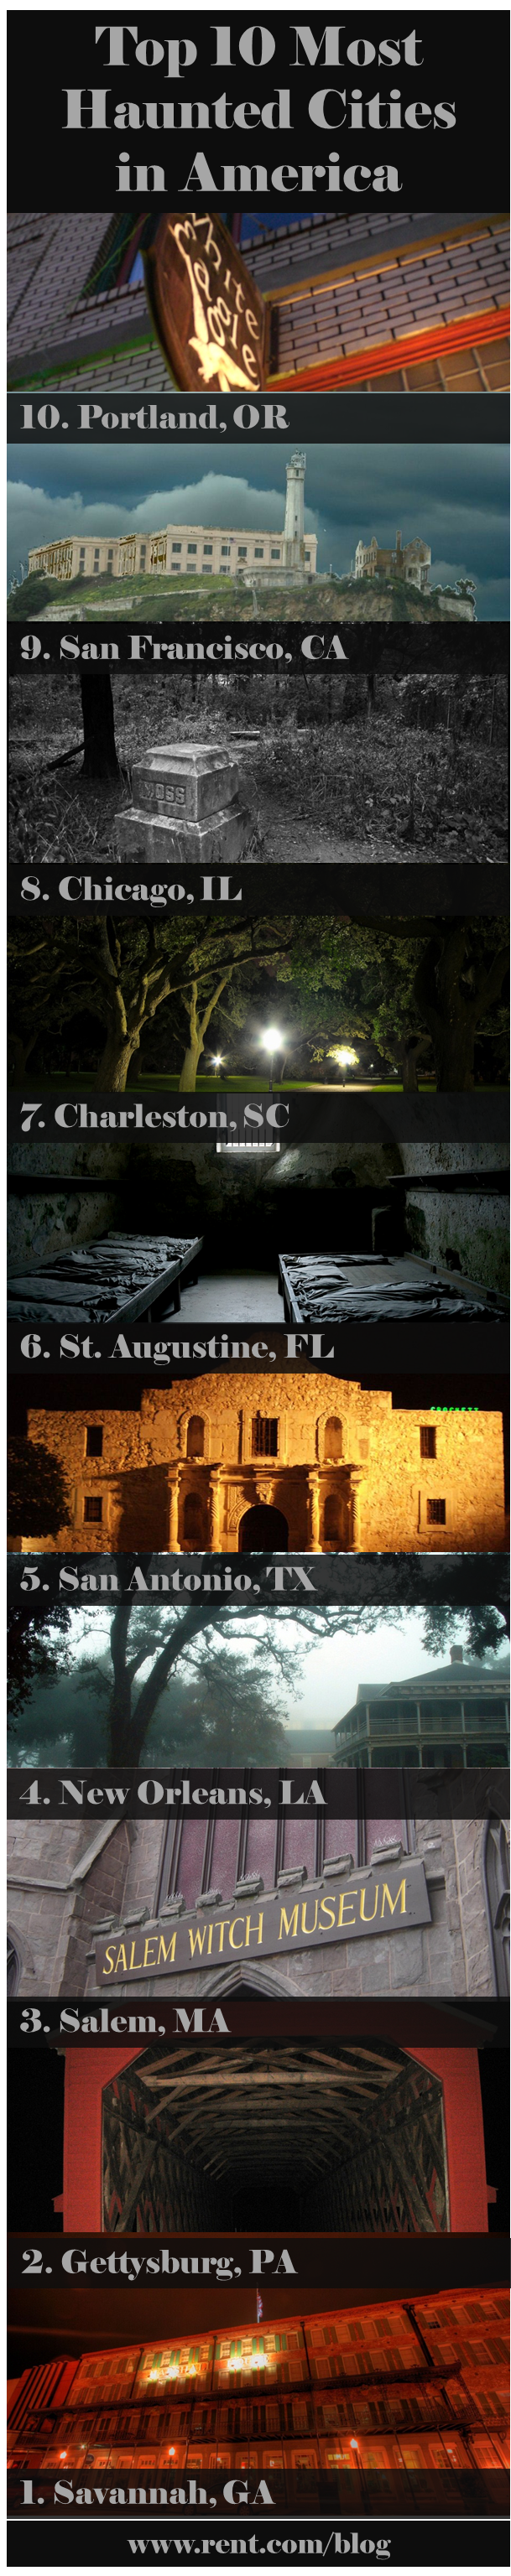 Rent.com lists the top 10 most #haunted cities in America. [Rent.com Blog]